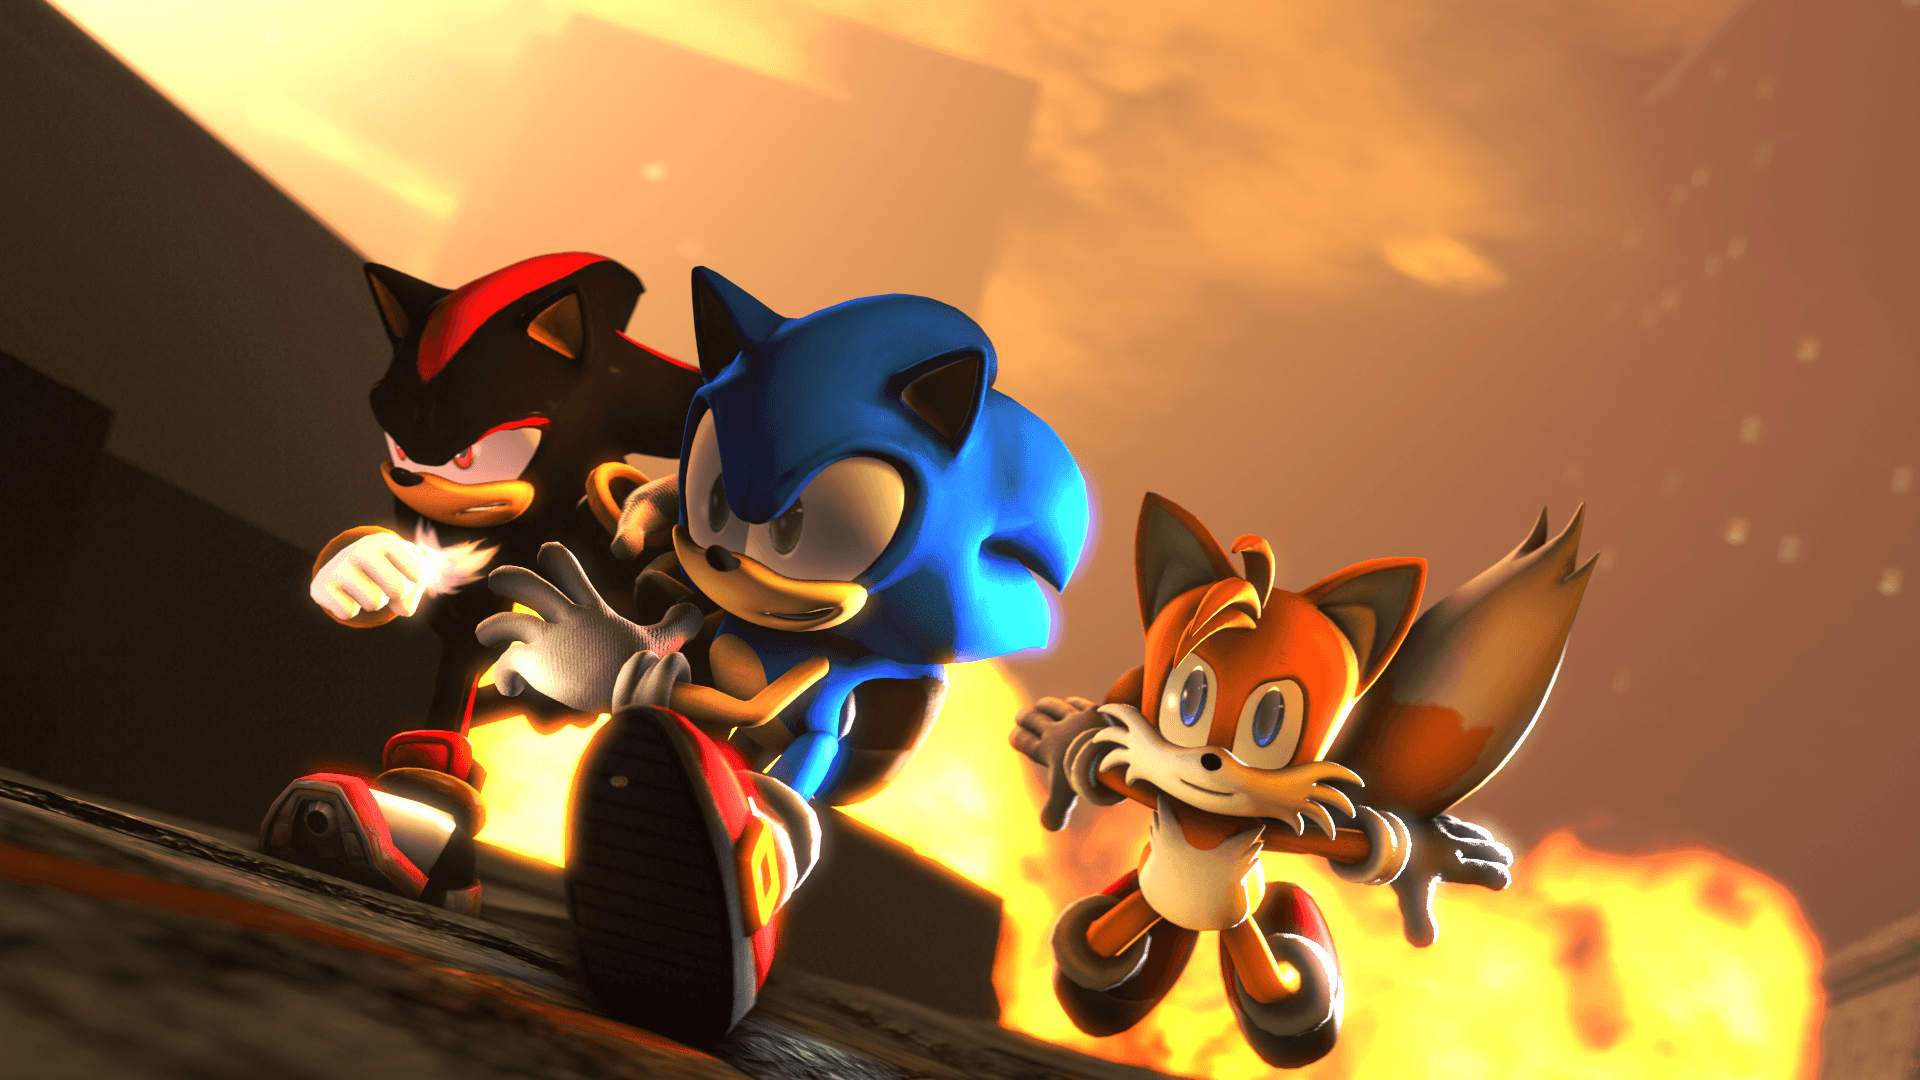 Sonic The Hedgehog City Wallpapers Top Free Sonic The Hedgehog City Backgrounds Wallpaperaccess